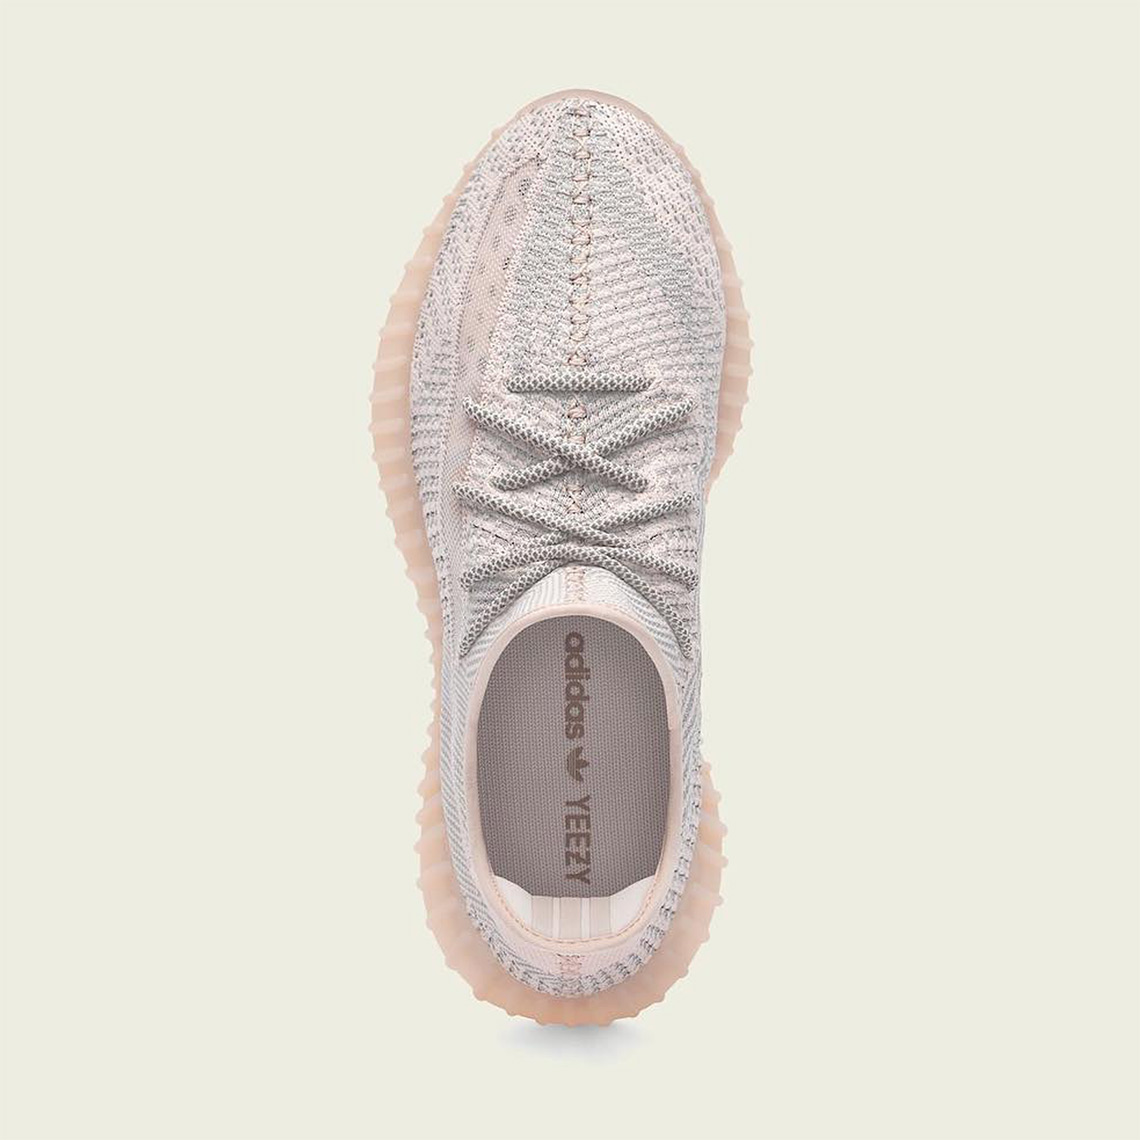 adidas Yeezy Boost 350 V2 Synth (Kids) Sneakers